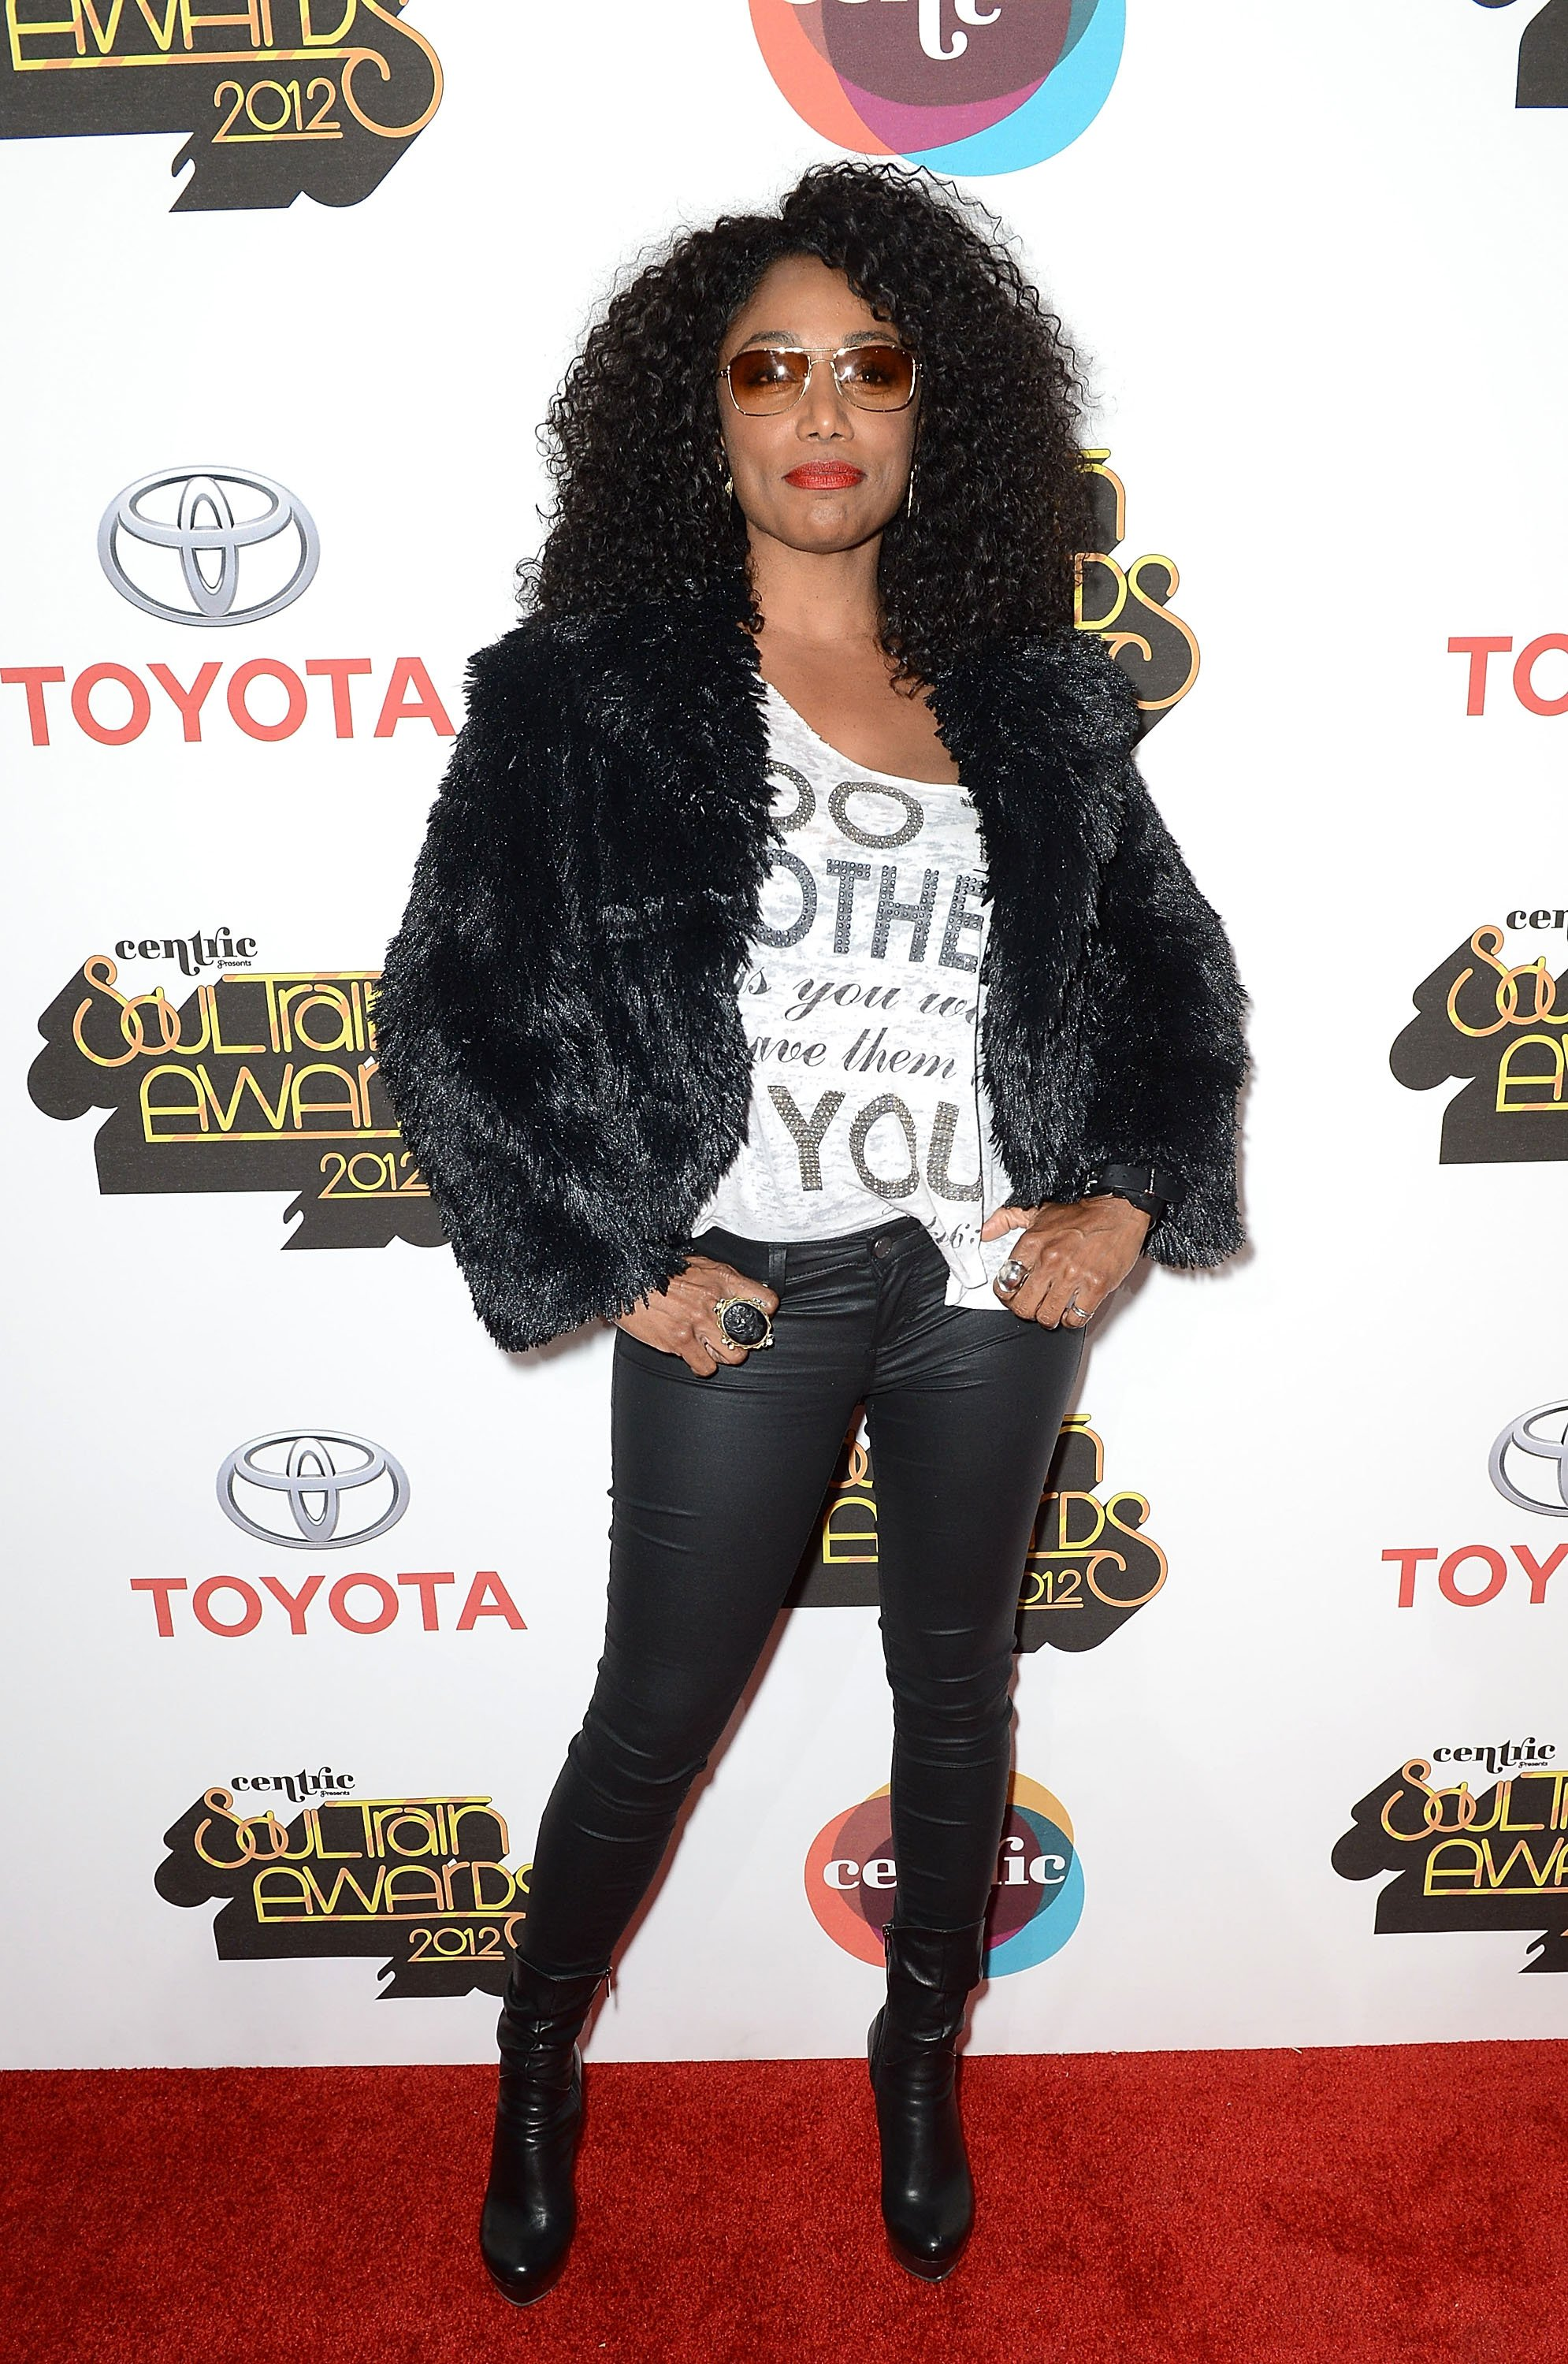 Karyn White arrives at the Soul Train Awards 2012 at PH Live at Planet Hollywood Resort & Casino on November 8, 2012 | Photo: GettyImages